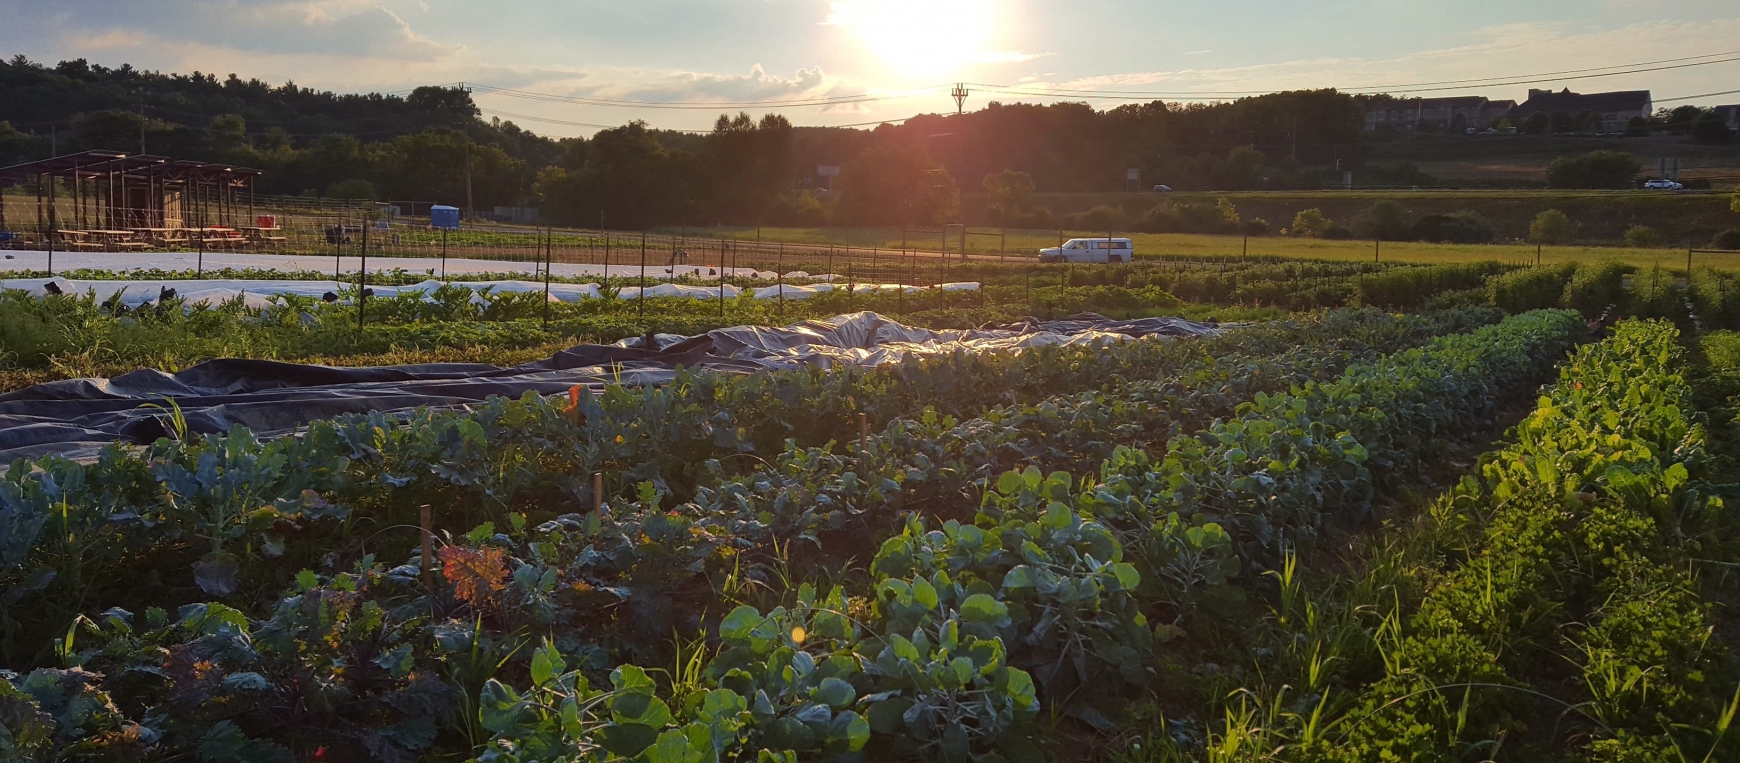 Student Farm Club To Host First Fall Harvest Festival